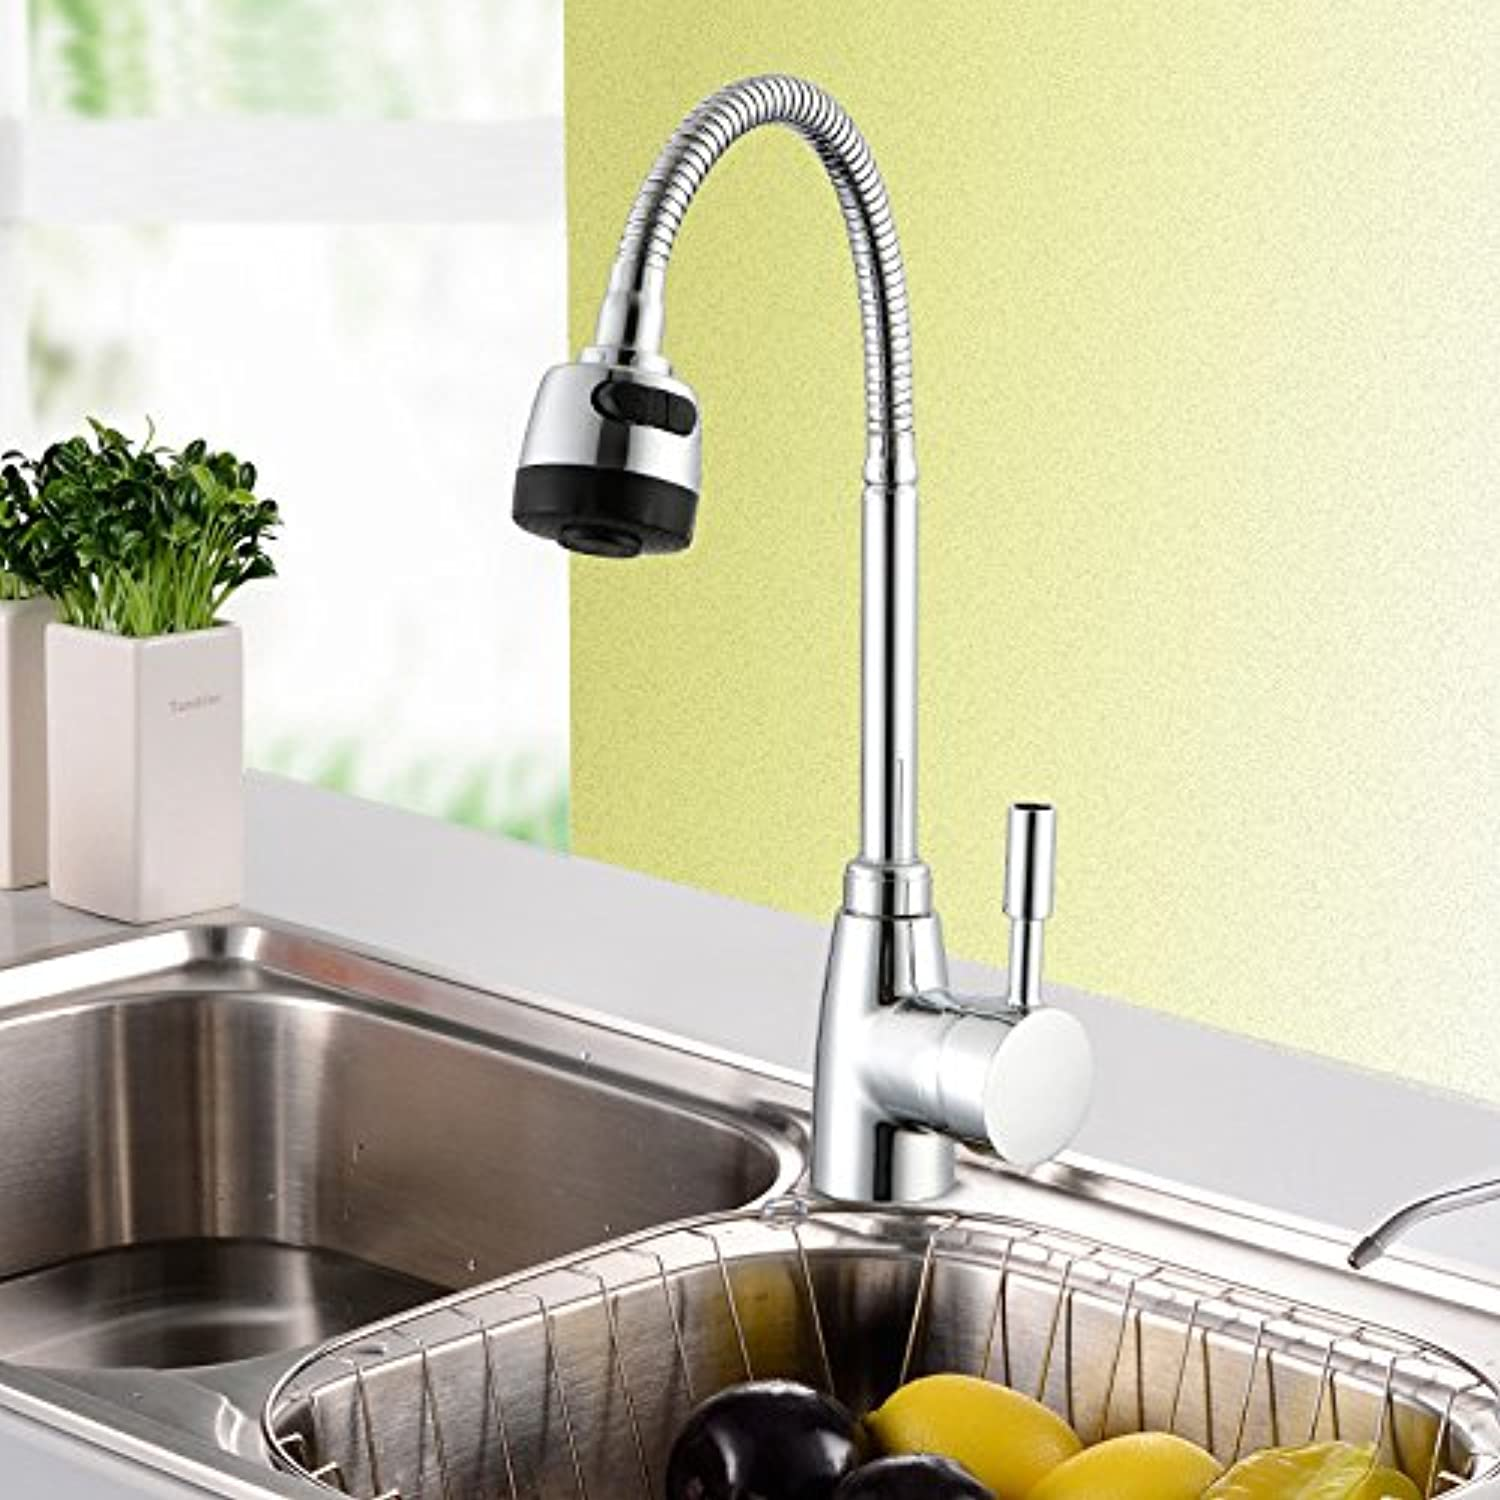 Commercial Single Lever Pull Down Kitchen Sink Faucet Brass Constructed Polished Sink Faucet Kitchen Kitchen Hot and Cold Faucet Sink Sink Faucet Sink Basin Mixer Faucet